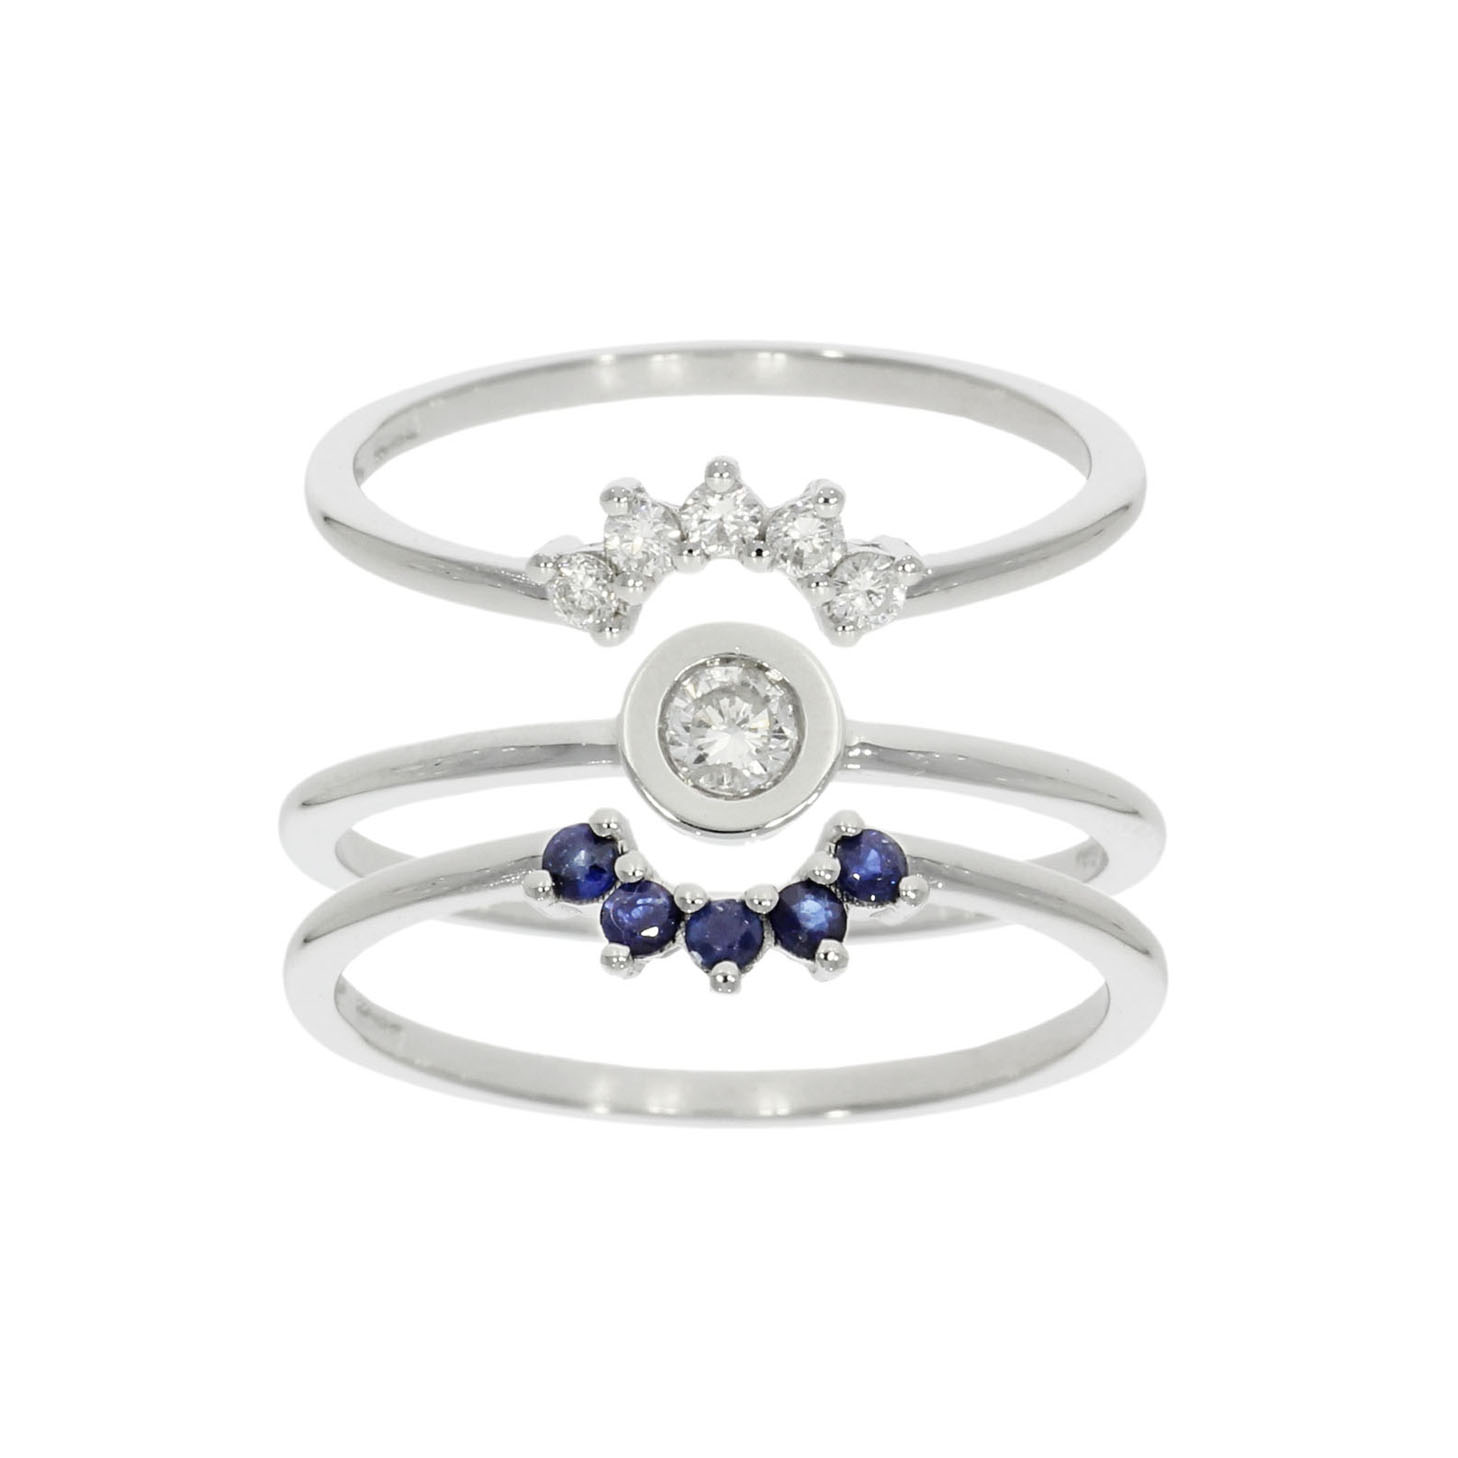 18ct White Gold Diamond and Sapphire Ring Set